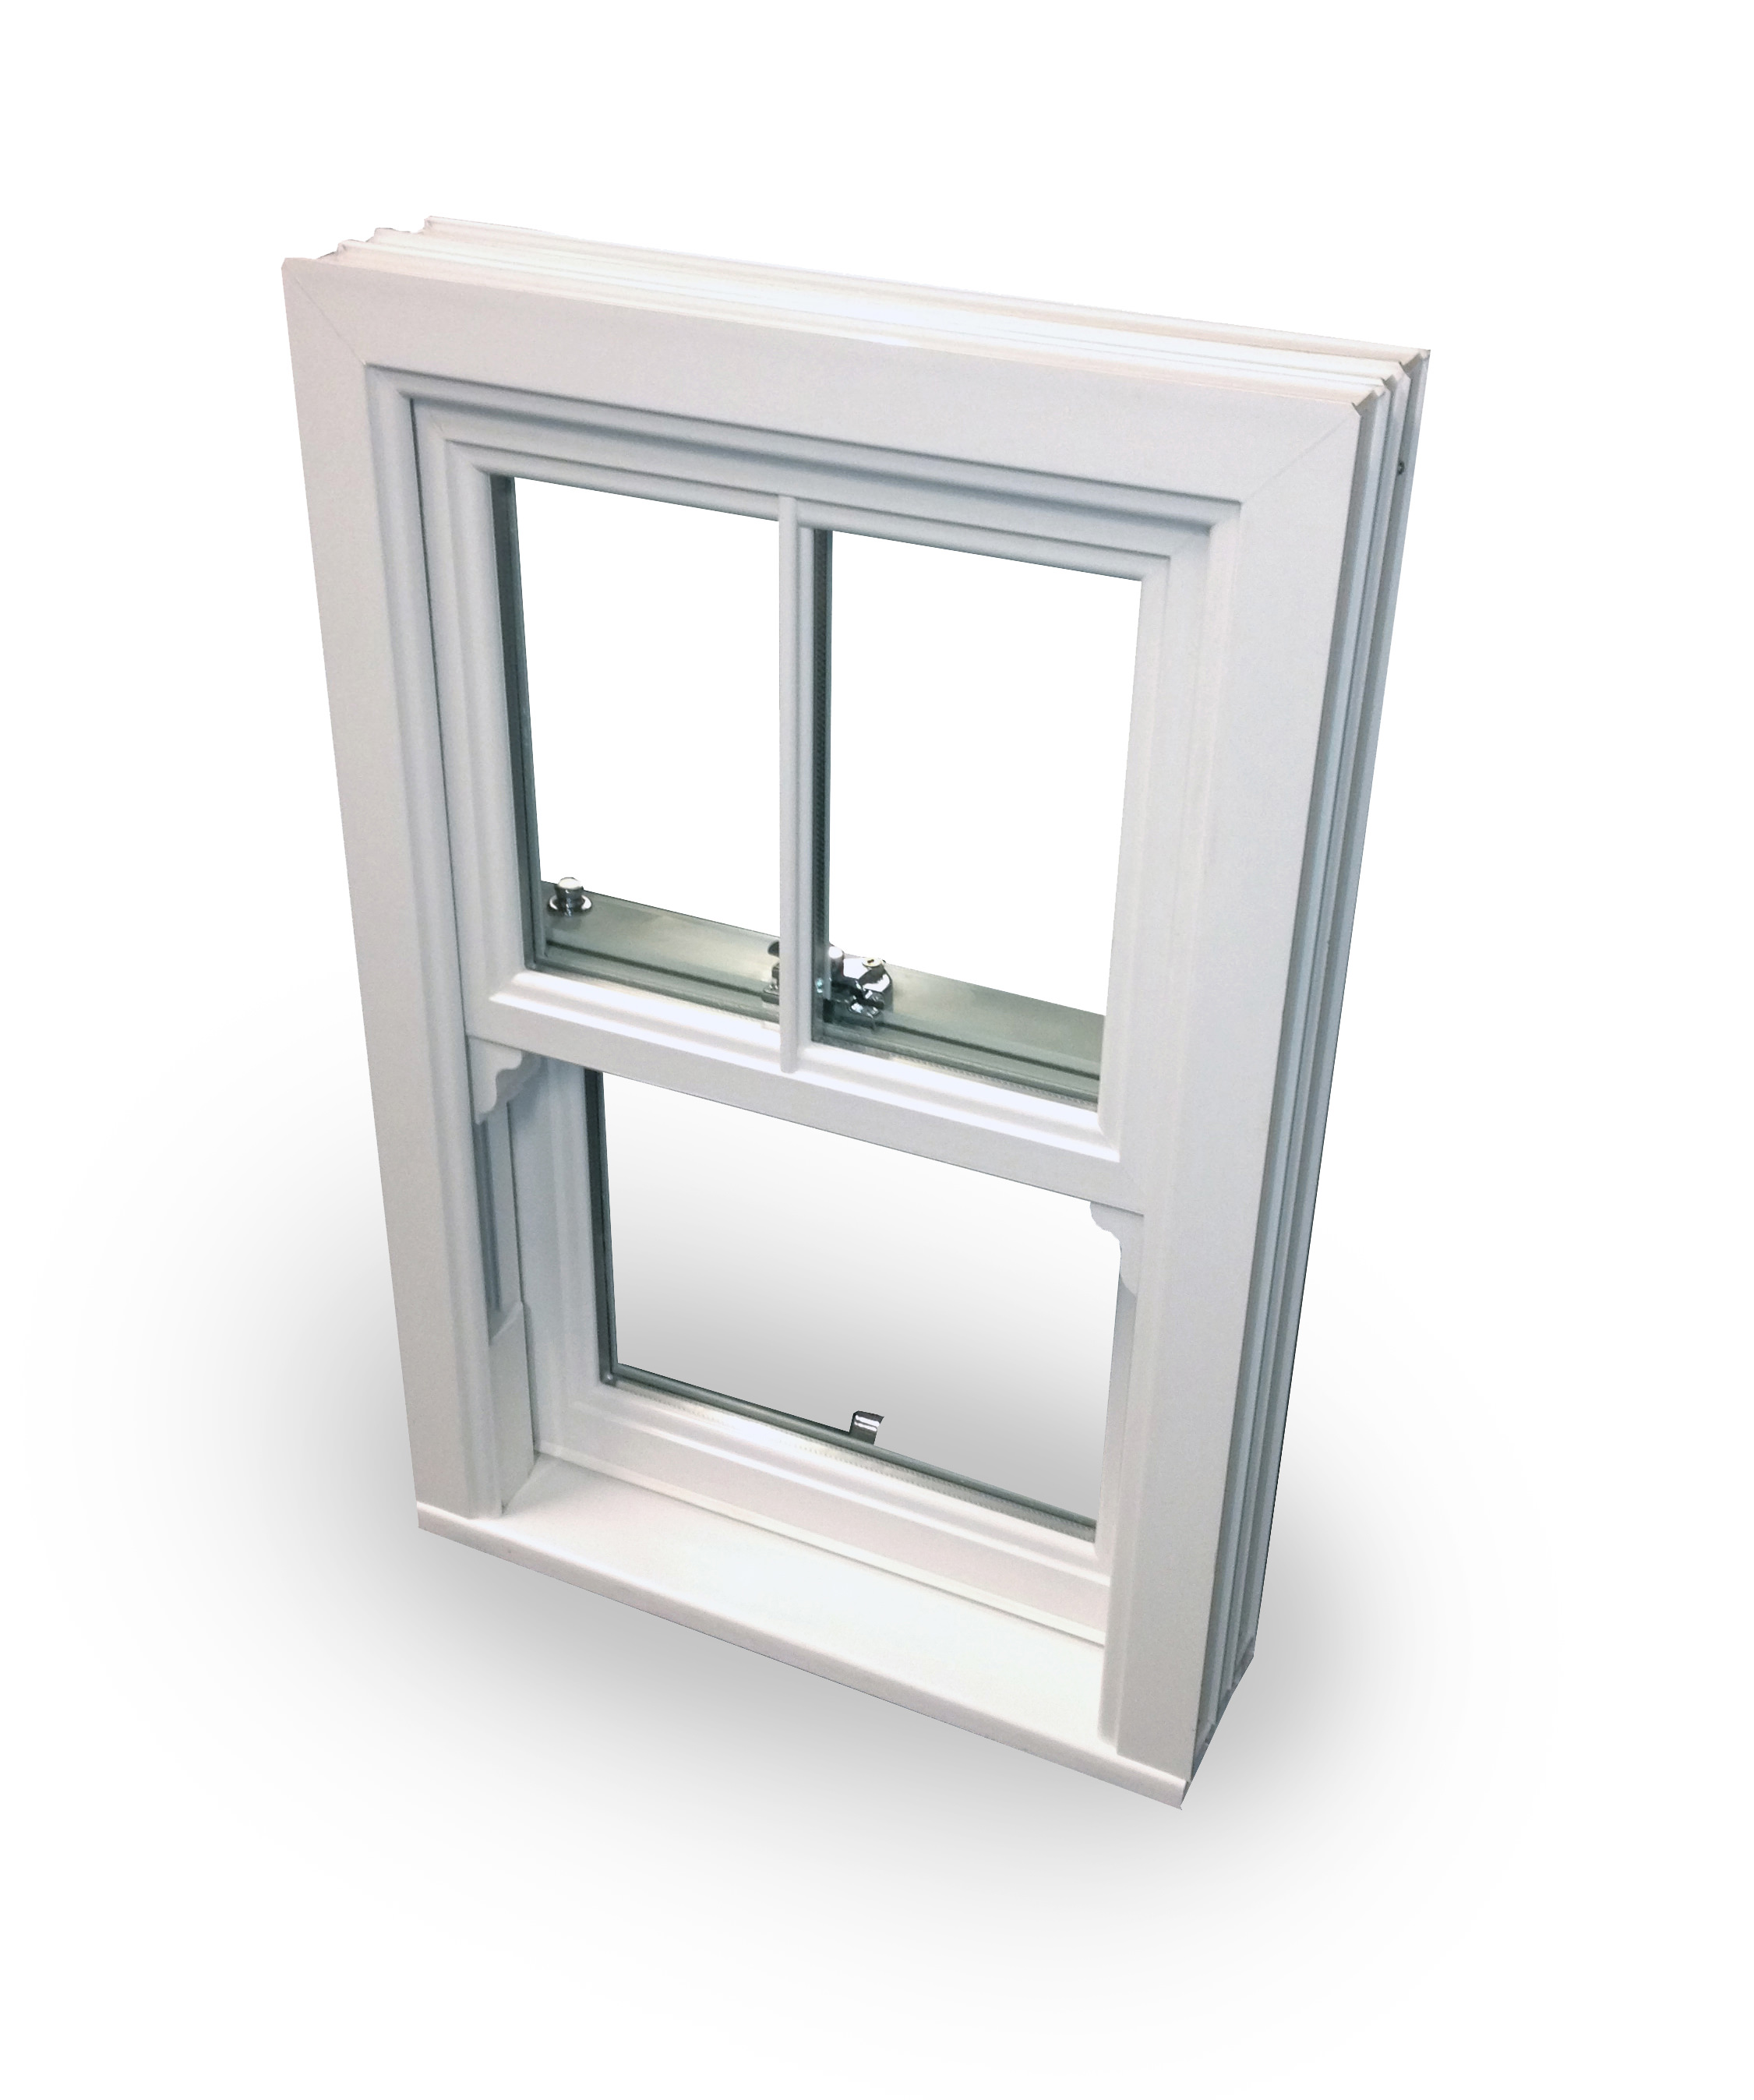 Sliding Sash Windows Southampton